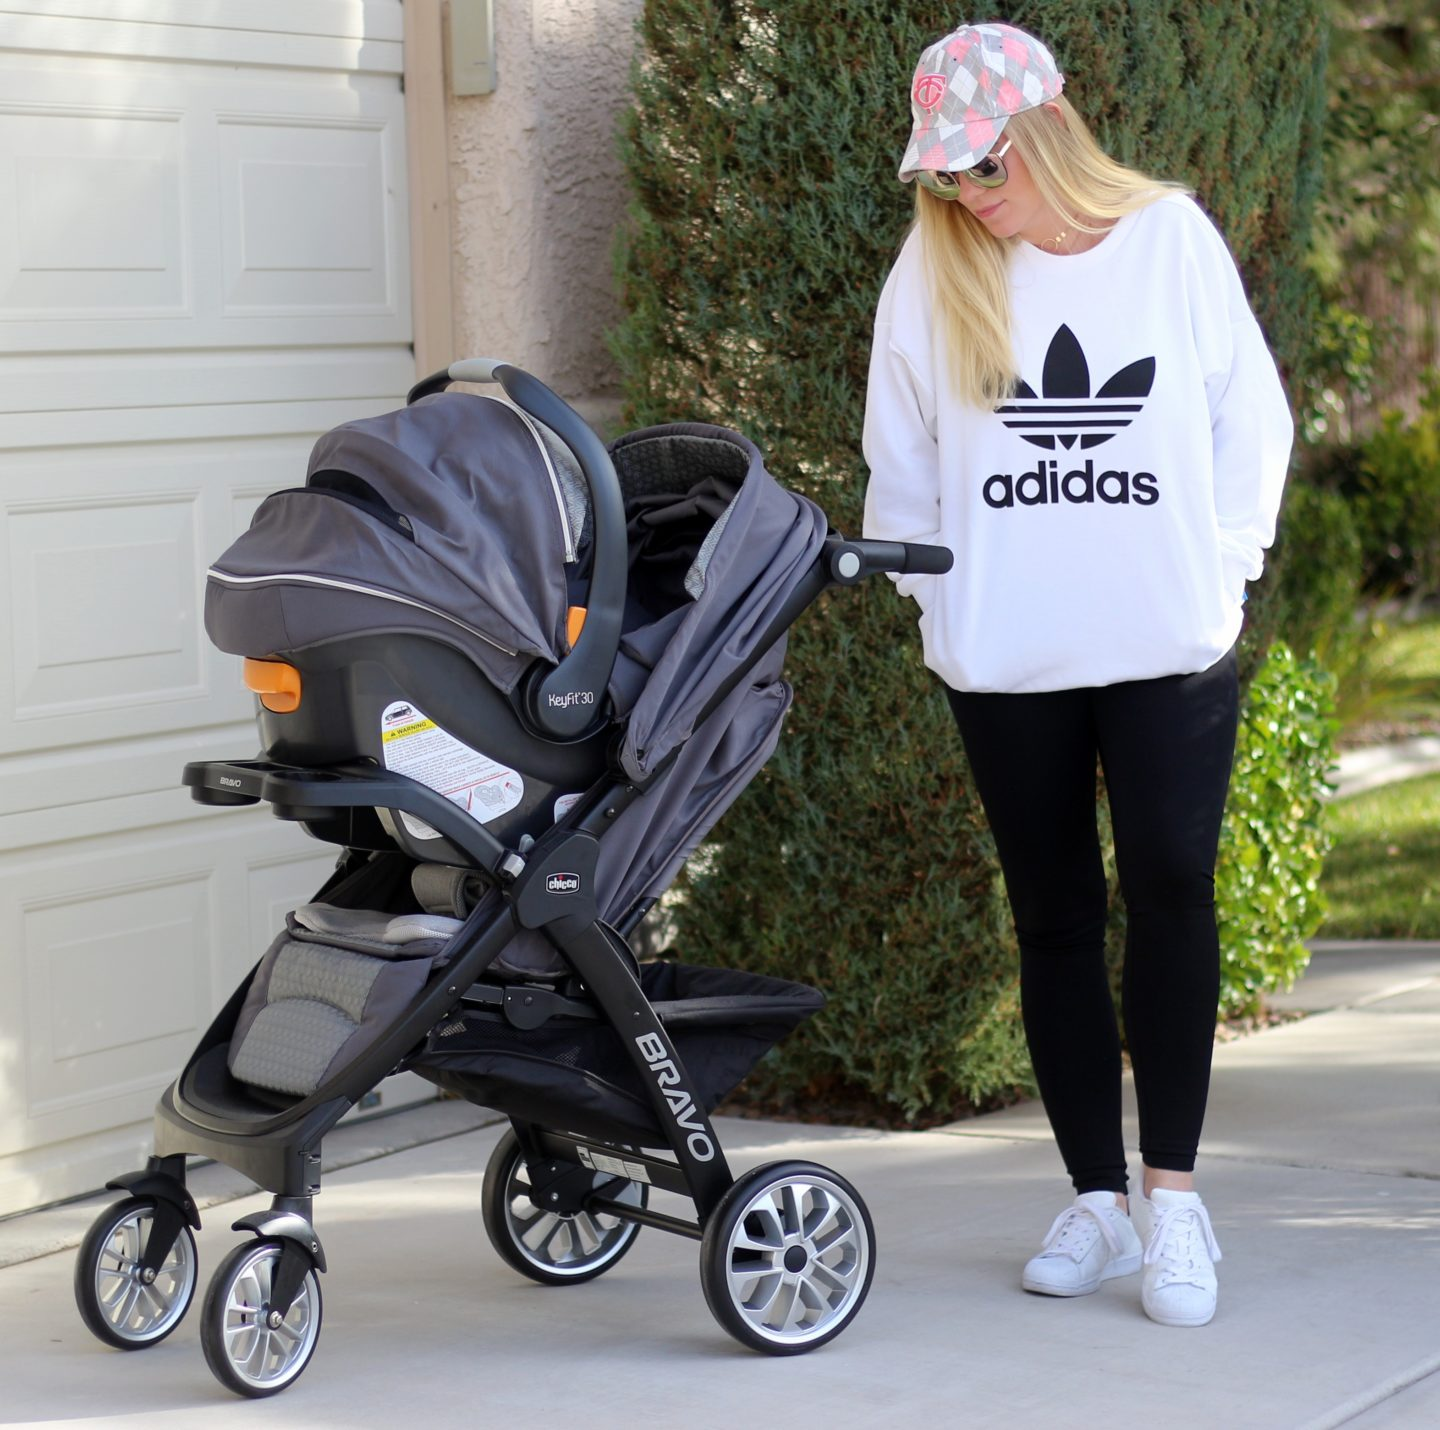 Casual Adidas Outfit